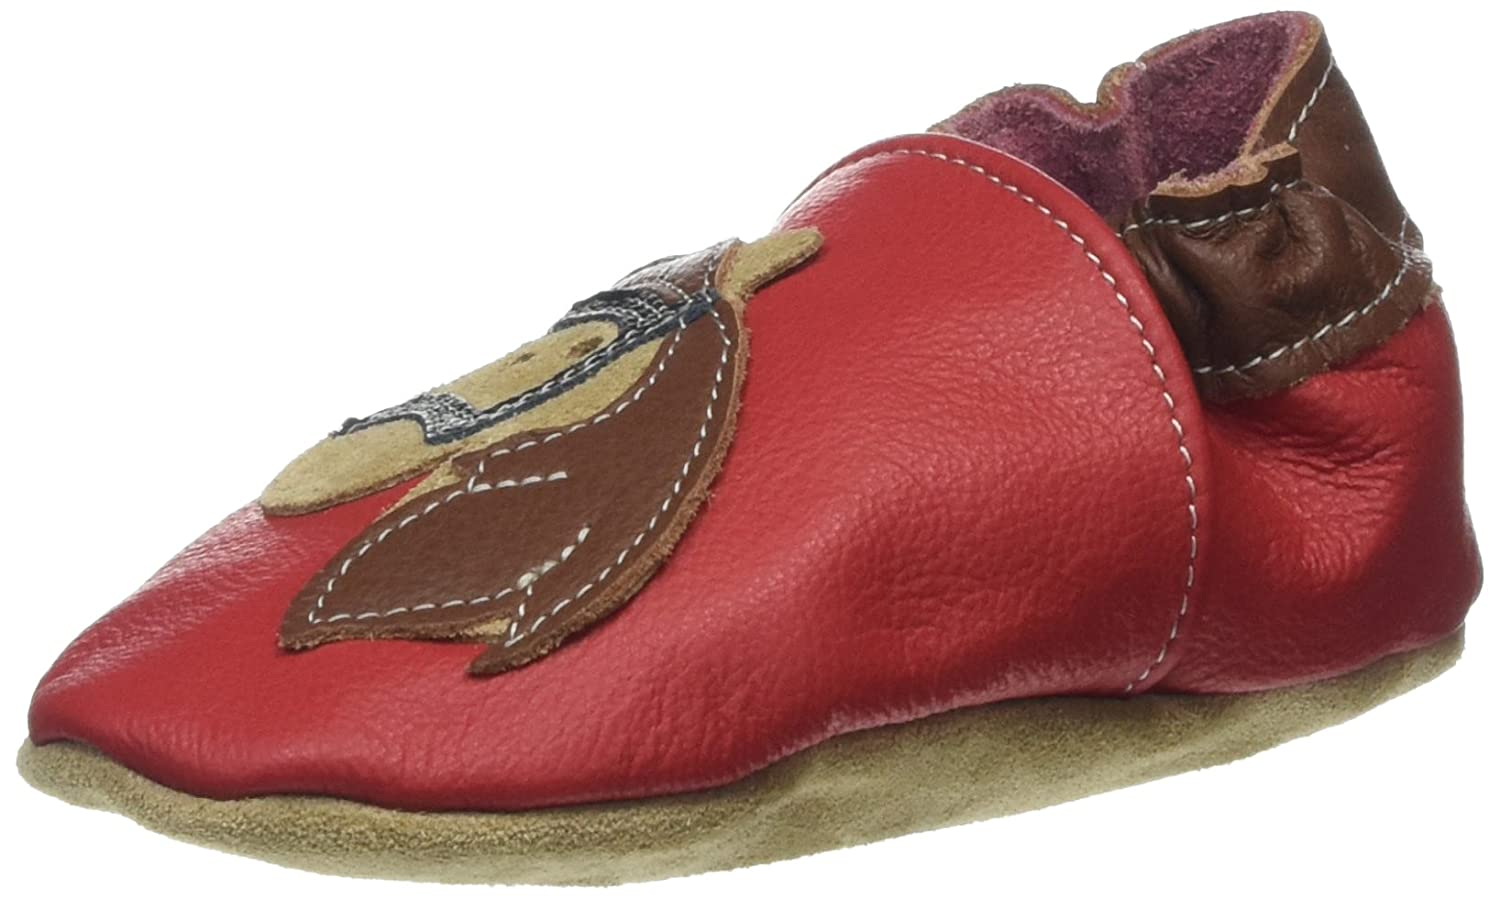 HOBEA Unisex Babies' Horse Birth Shoes (Red) 12-18 Months 20/21 EU 4030